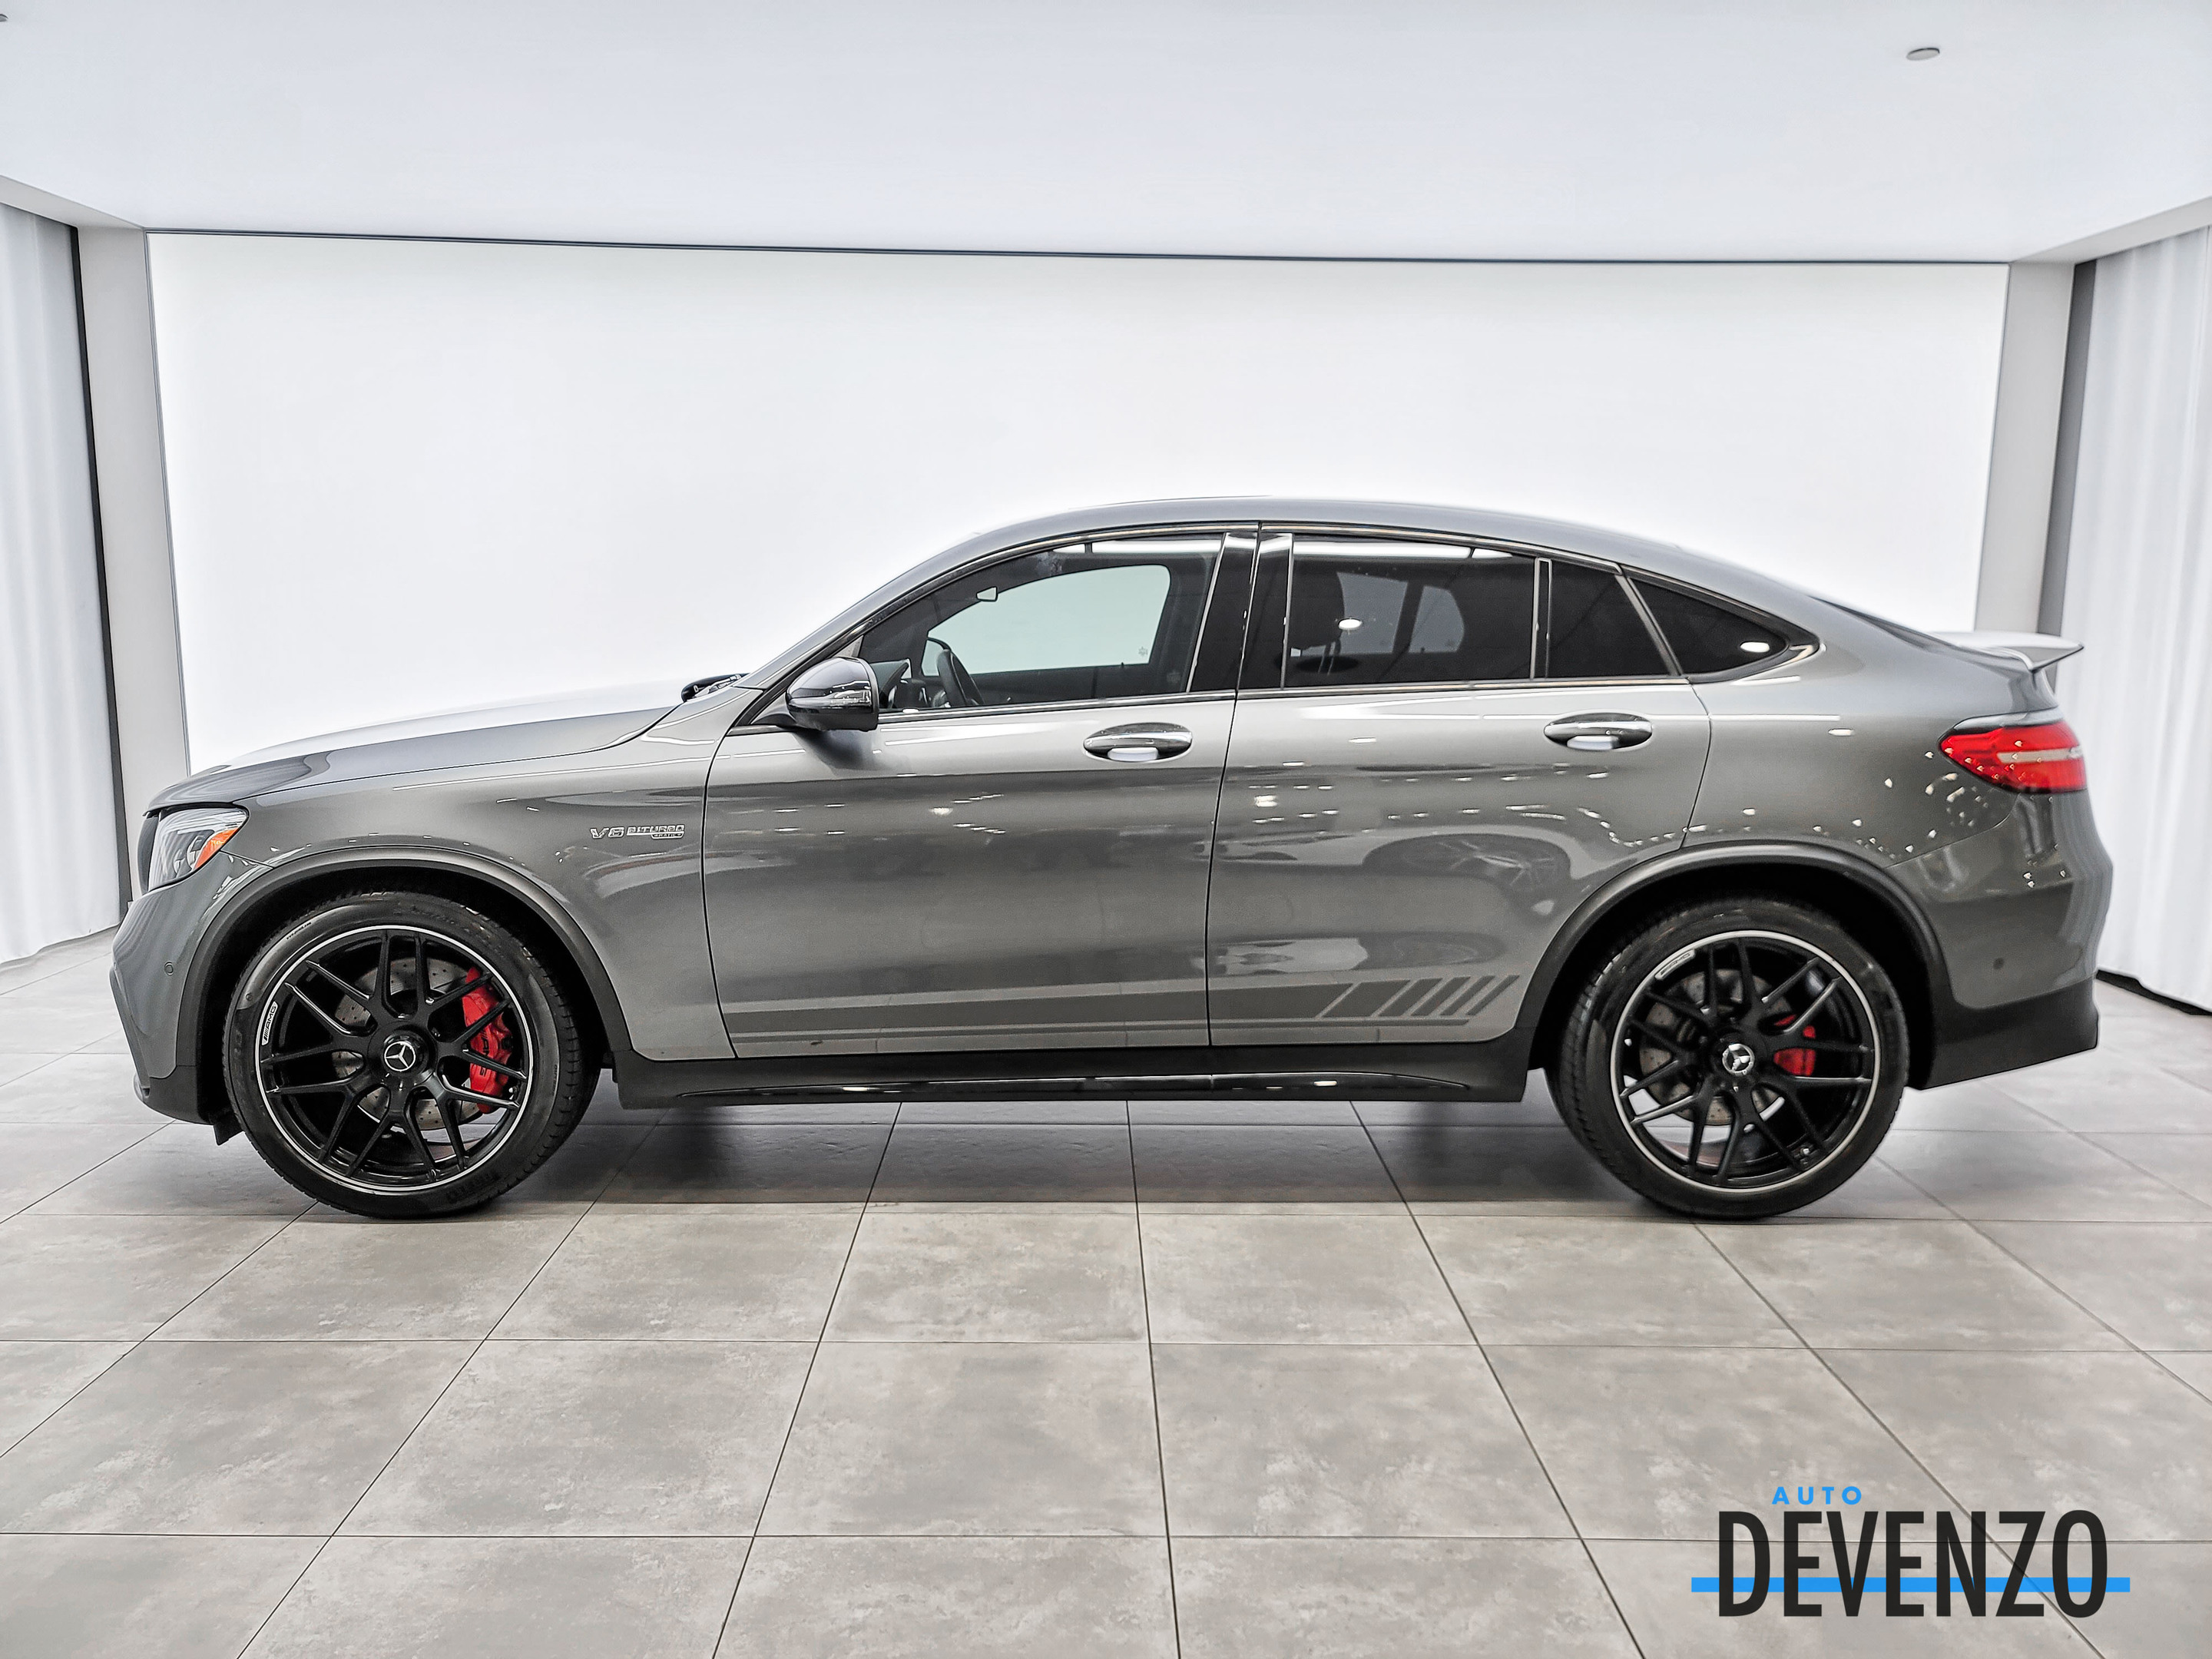 2018 Mercedes-Benz GLC AMG GLC63 S 4MATIC Coupe EDITION 1 503HP complet